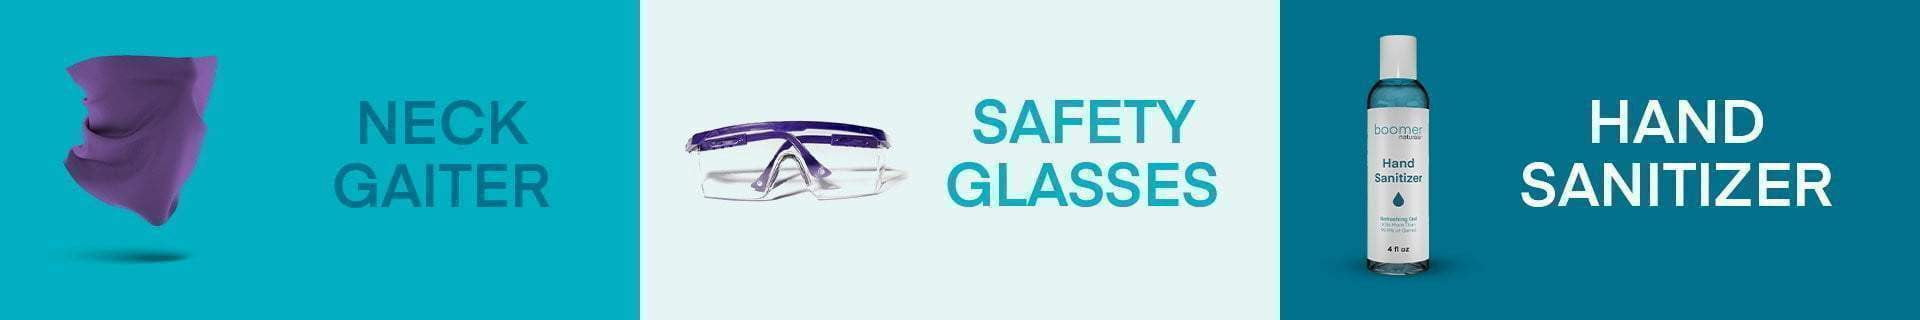 Gaiters and Safety Glasses